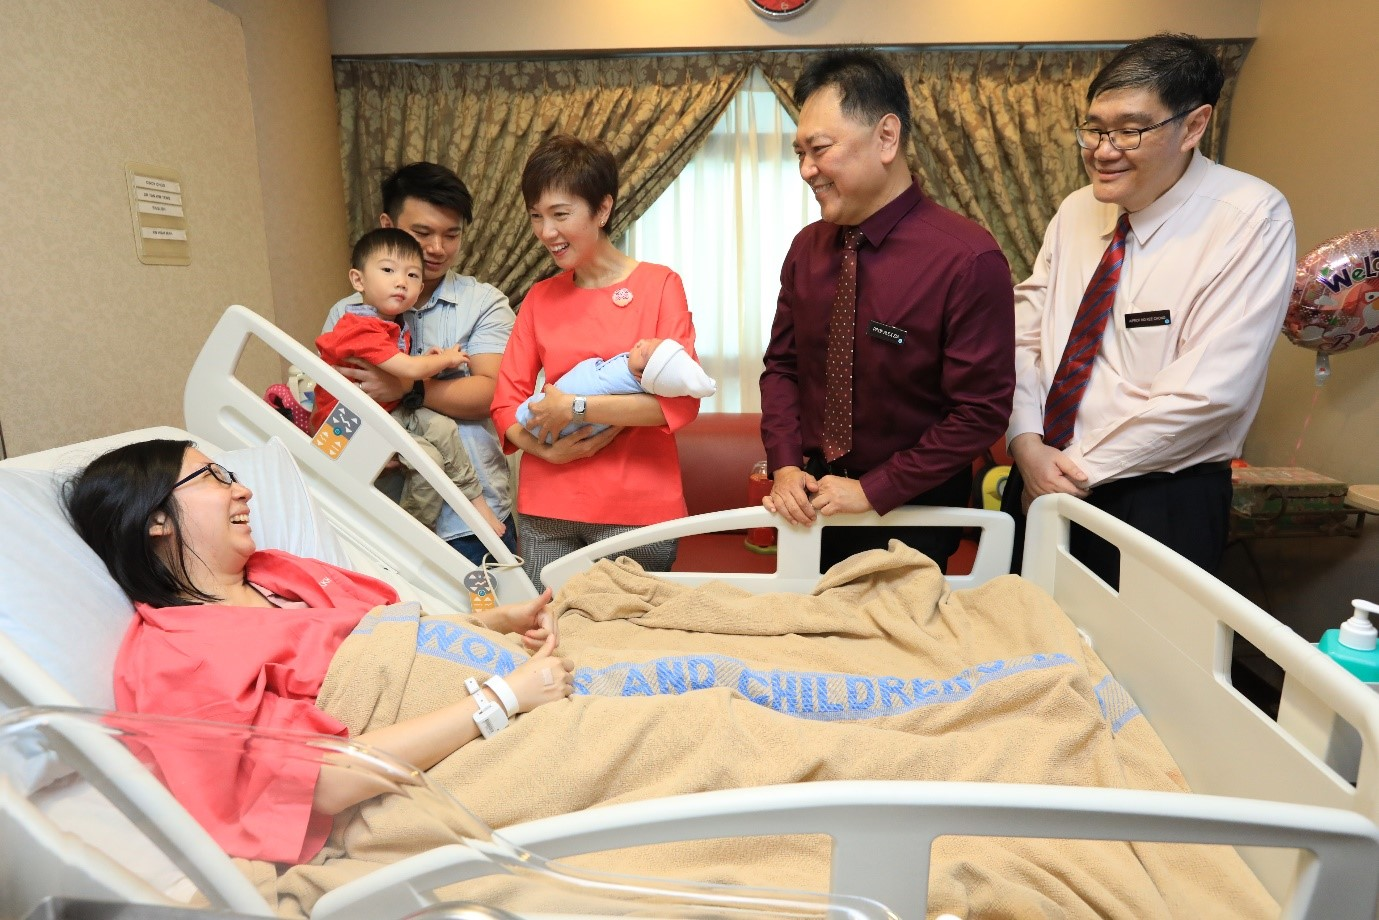 Minister Josephine Teo, Professor Alex Sia (Chief Executive Office) and Associate Professor Ng Kee Chong (Chairman, Medical Board) visited young couple Cindy Choo and Sam Koh who just had their second baby boy.